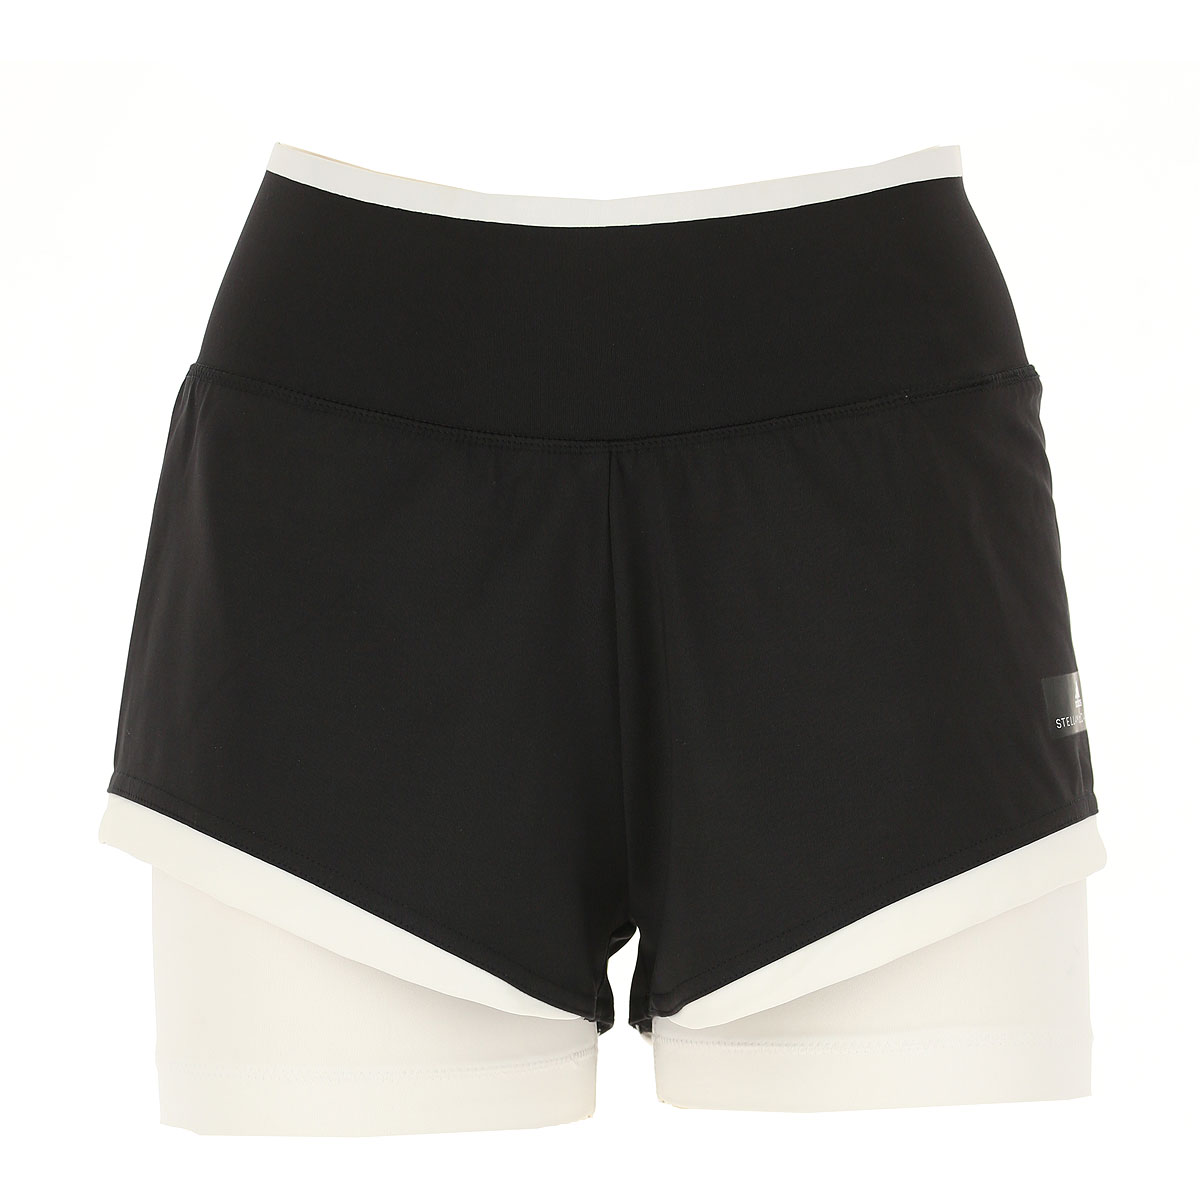 Image of Adidas Shorts for Women On Sale in Outlet, Black, Nylon, 2017, 2 4 6